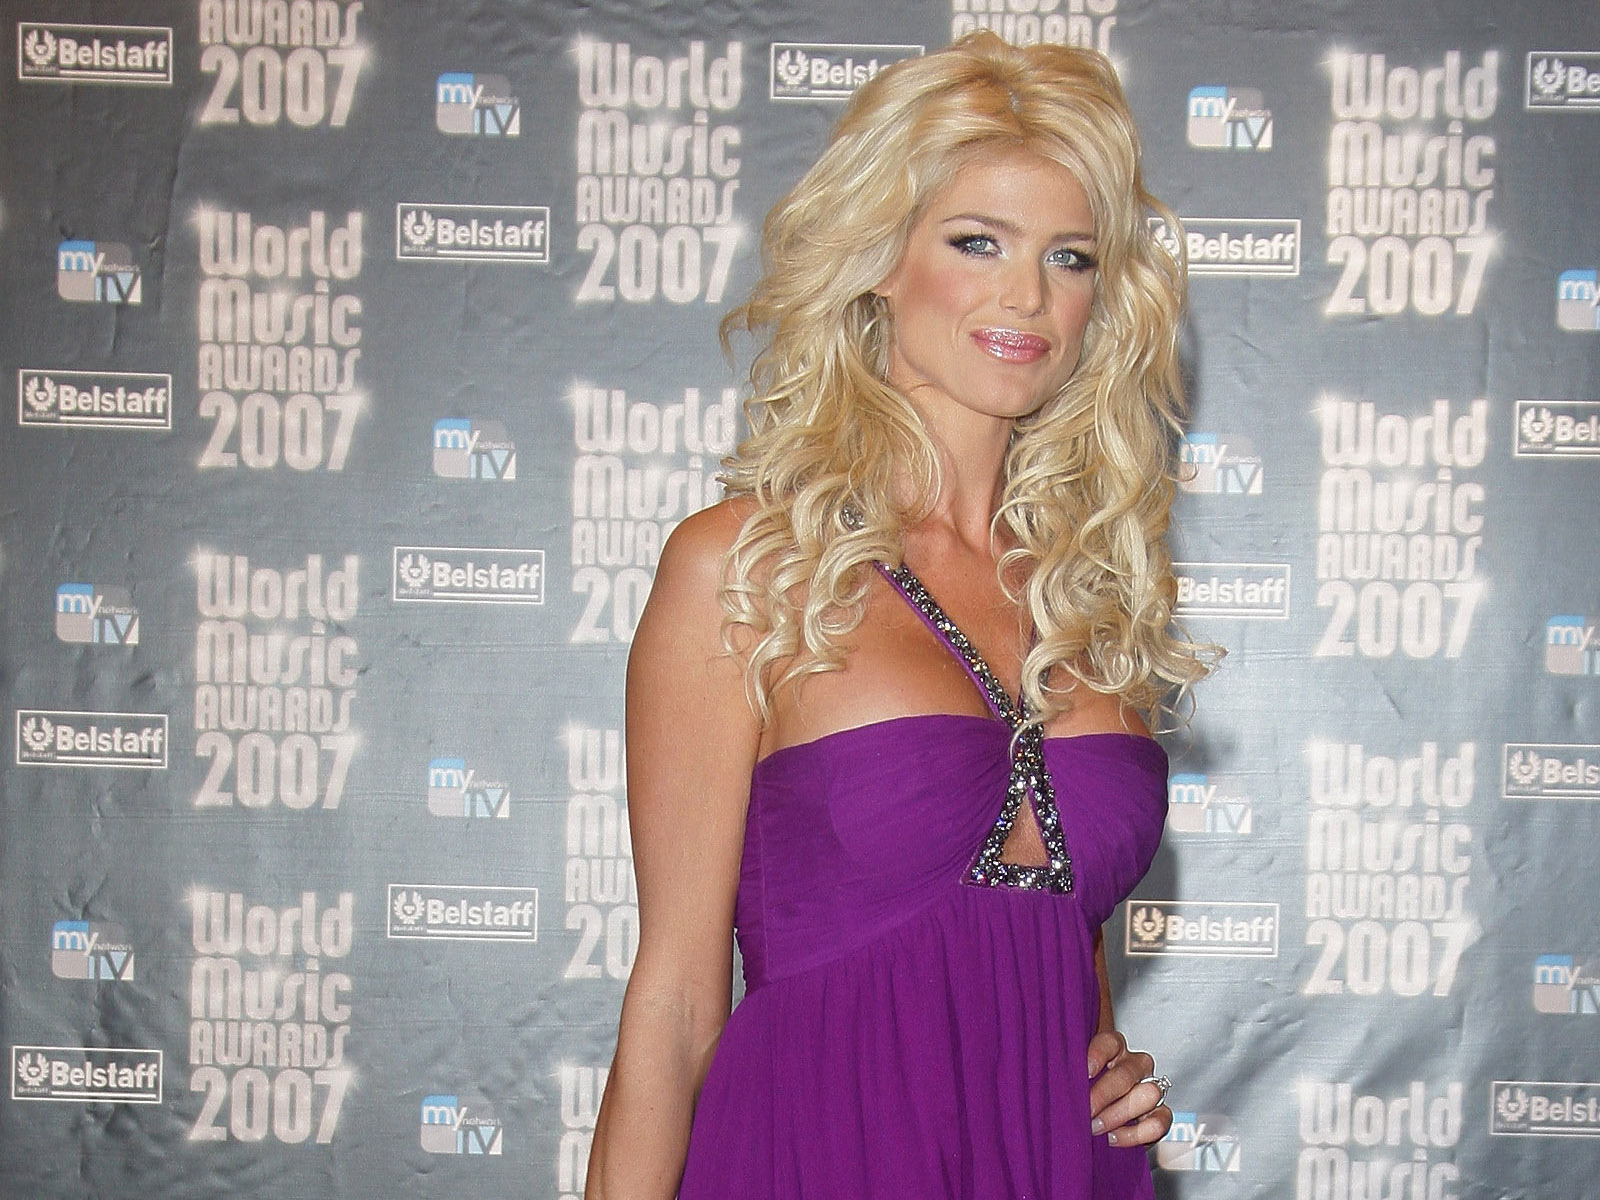 Victoria Silvstedt Wallpaper Free Hd Backgrounds Images Pictures